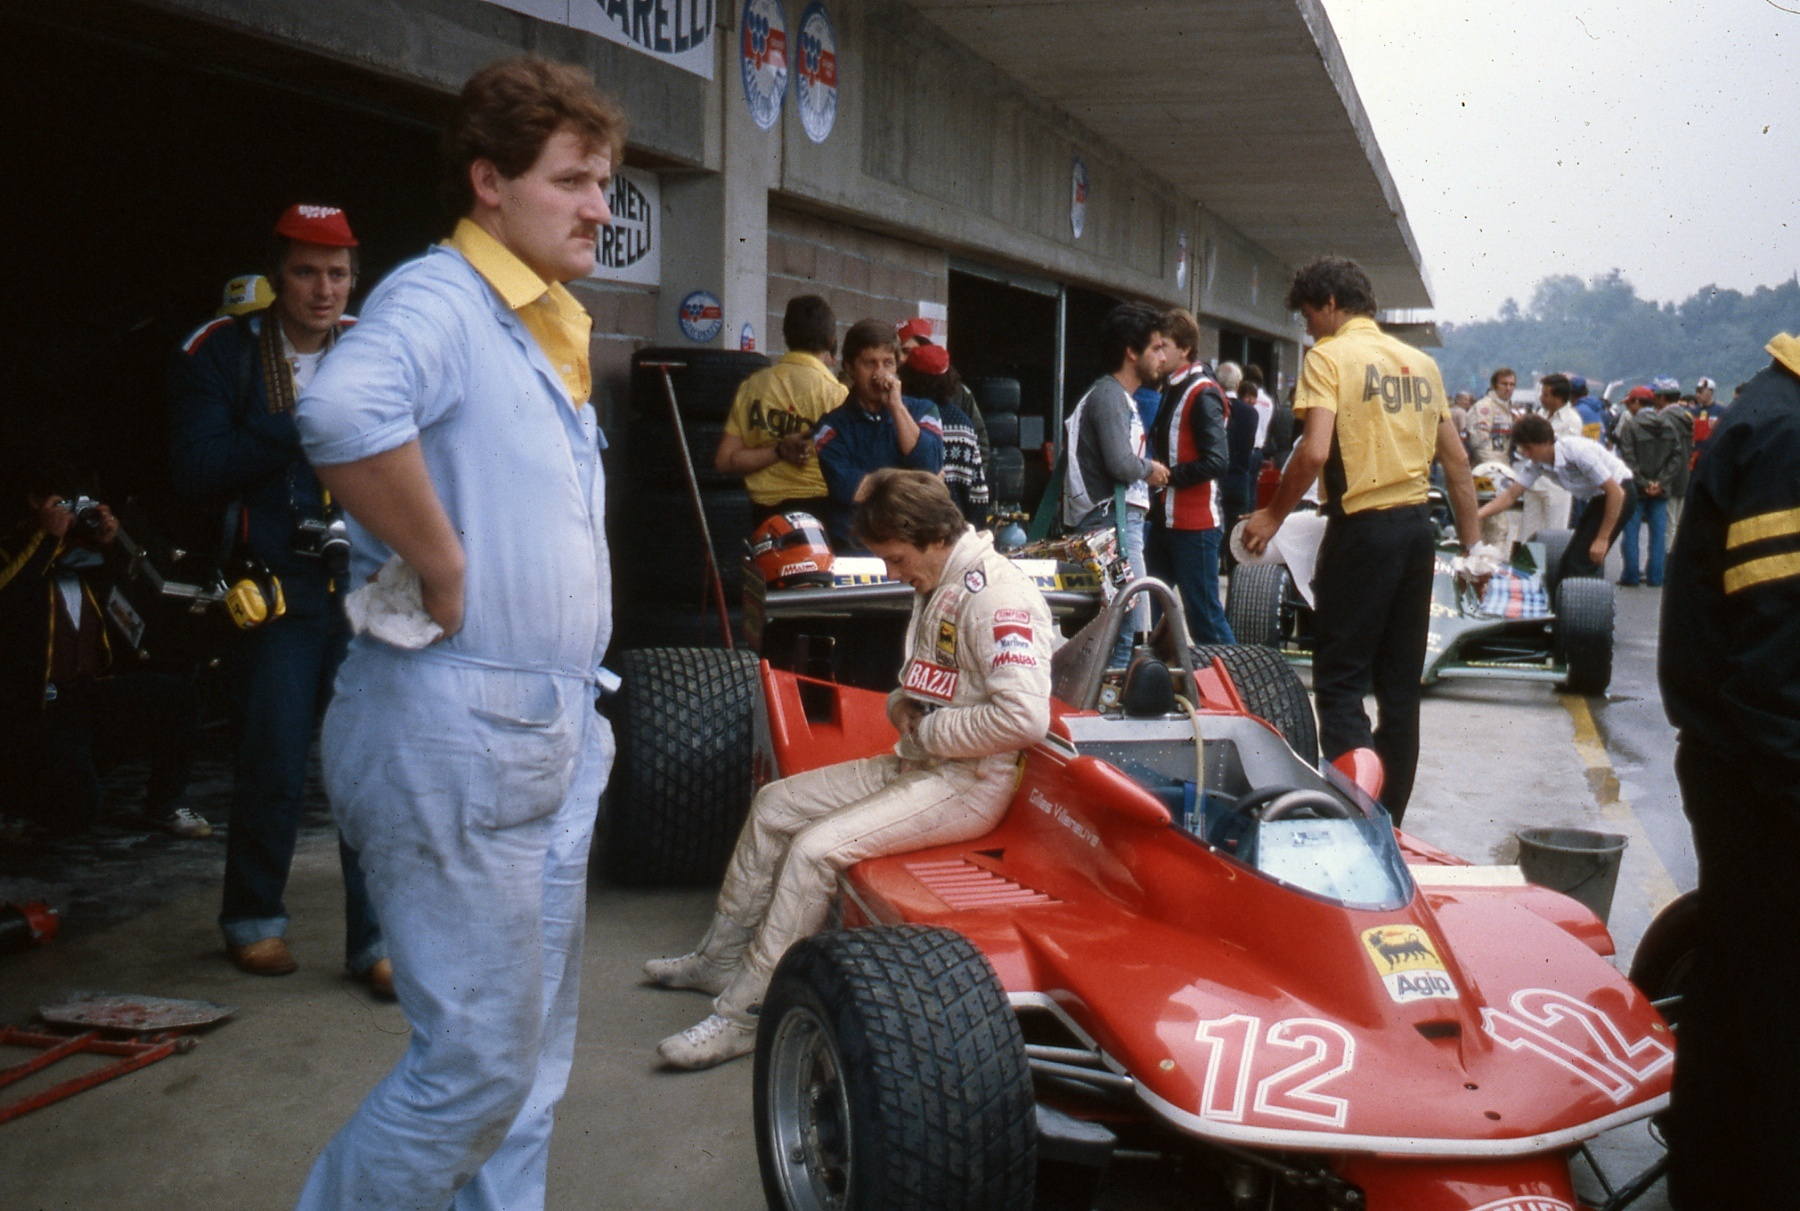 Gilles Villeneuve at Imola GP in 1979